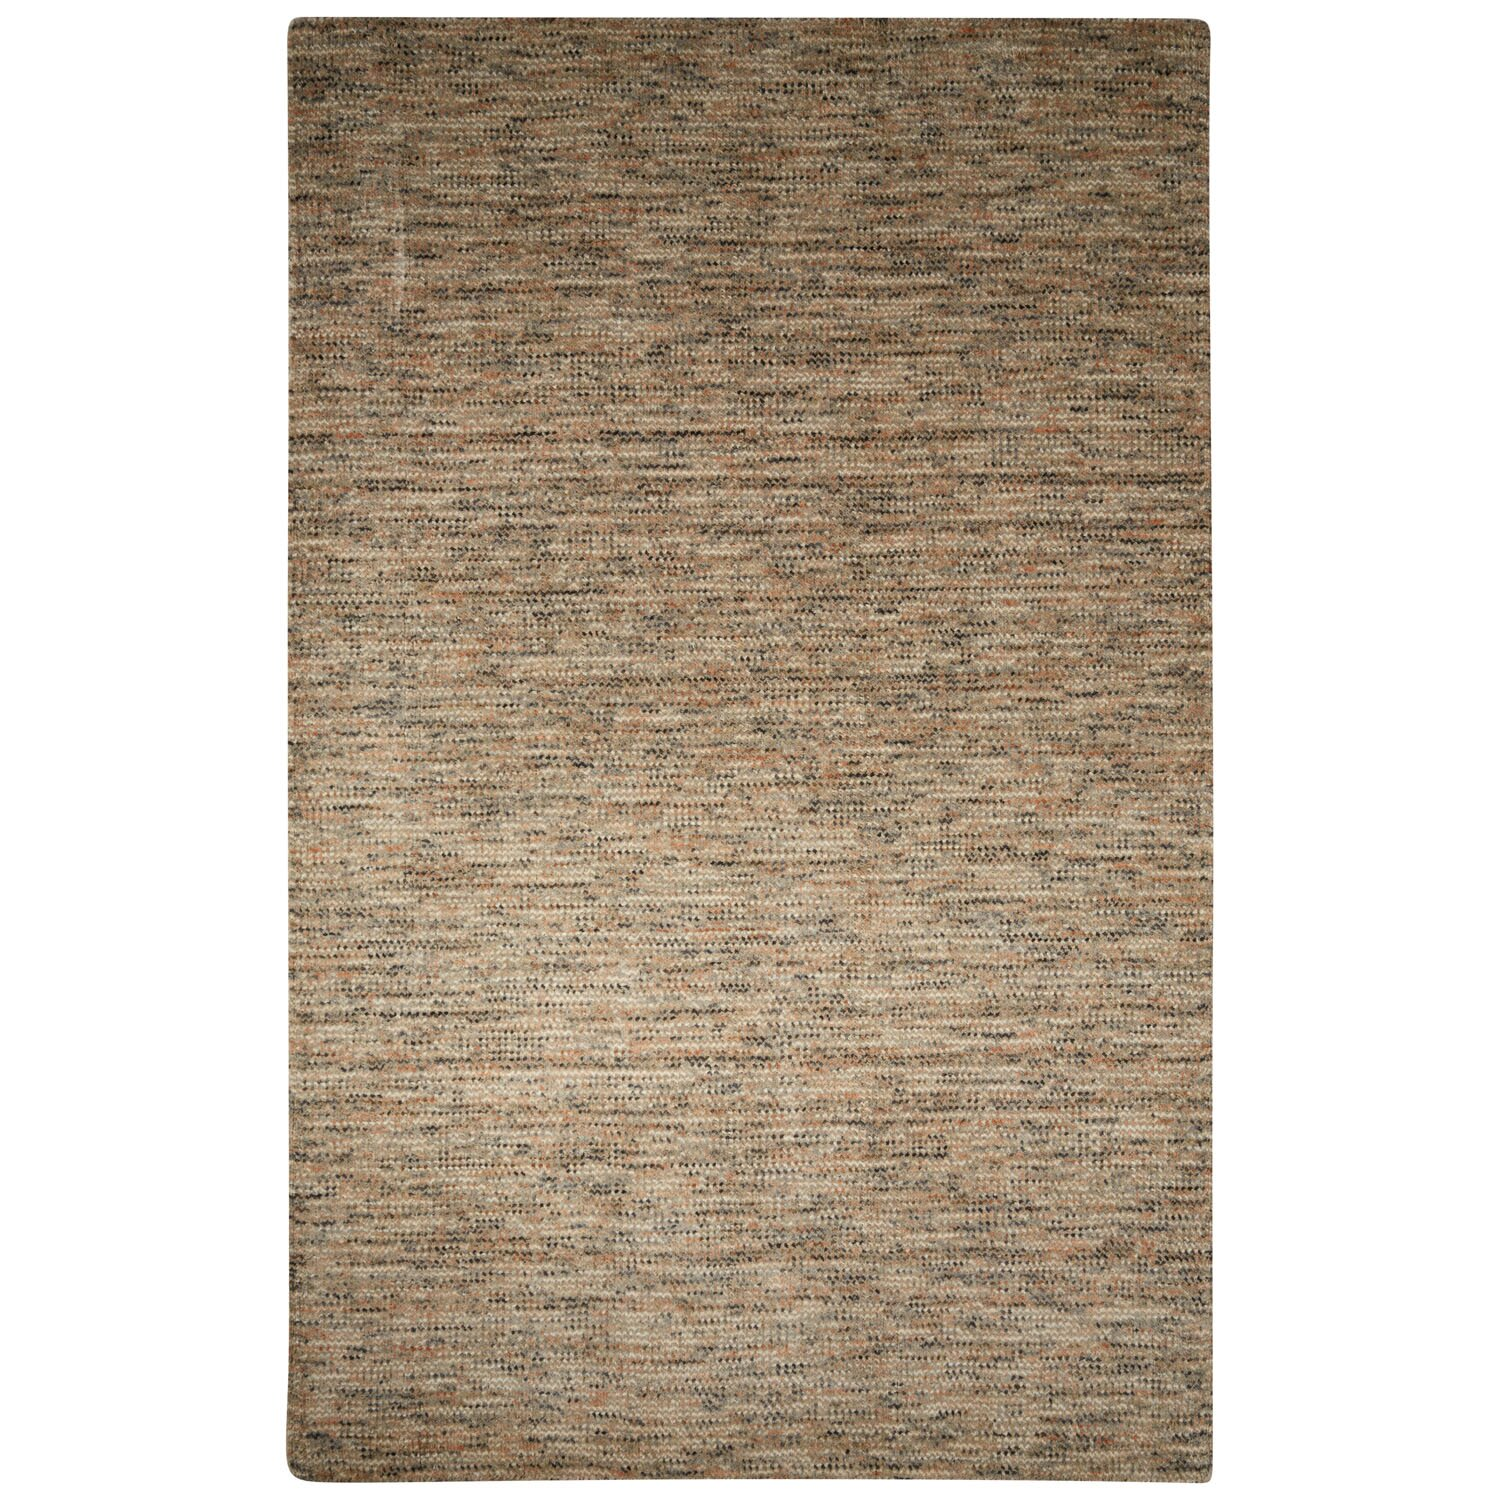 Alton hand loomed gray tan area rug wayfair for Grey and tan rug